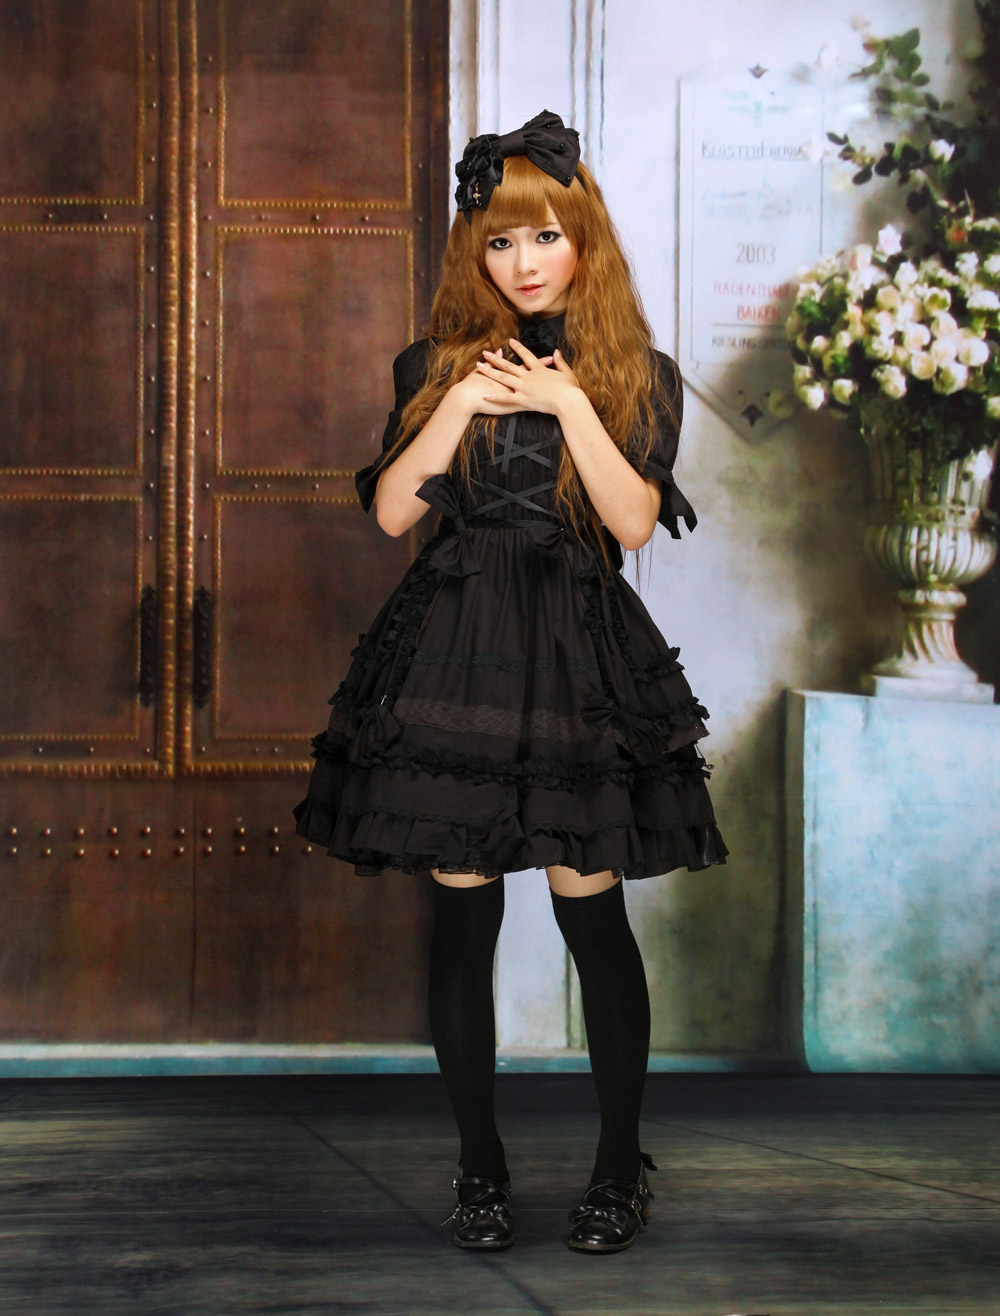 Buy Gothic Lolita Dress OP Black Short Sleeves Shirring Lace Up Ruffles Bows Cotton Lolita One Piece Dress for $86.99 in Milanoo store